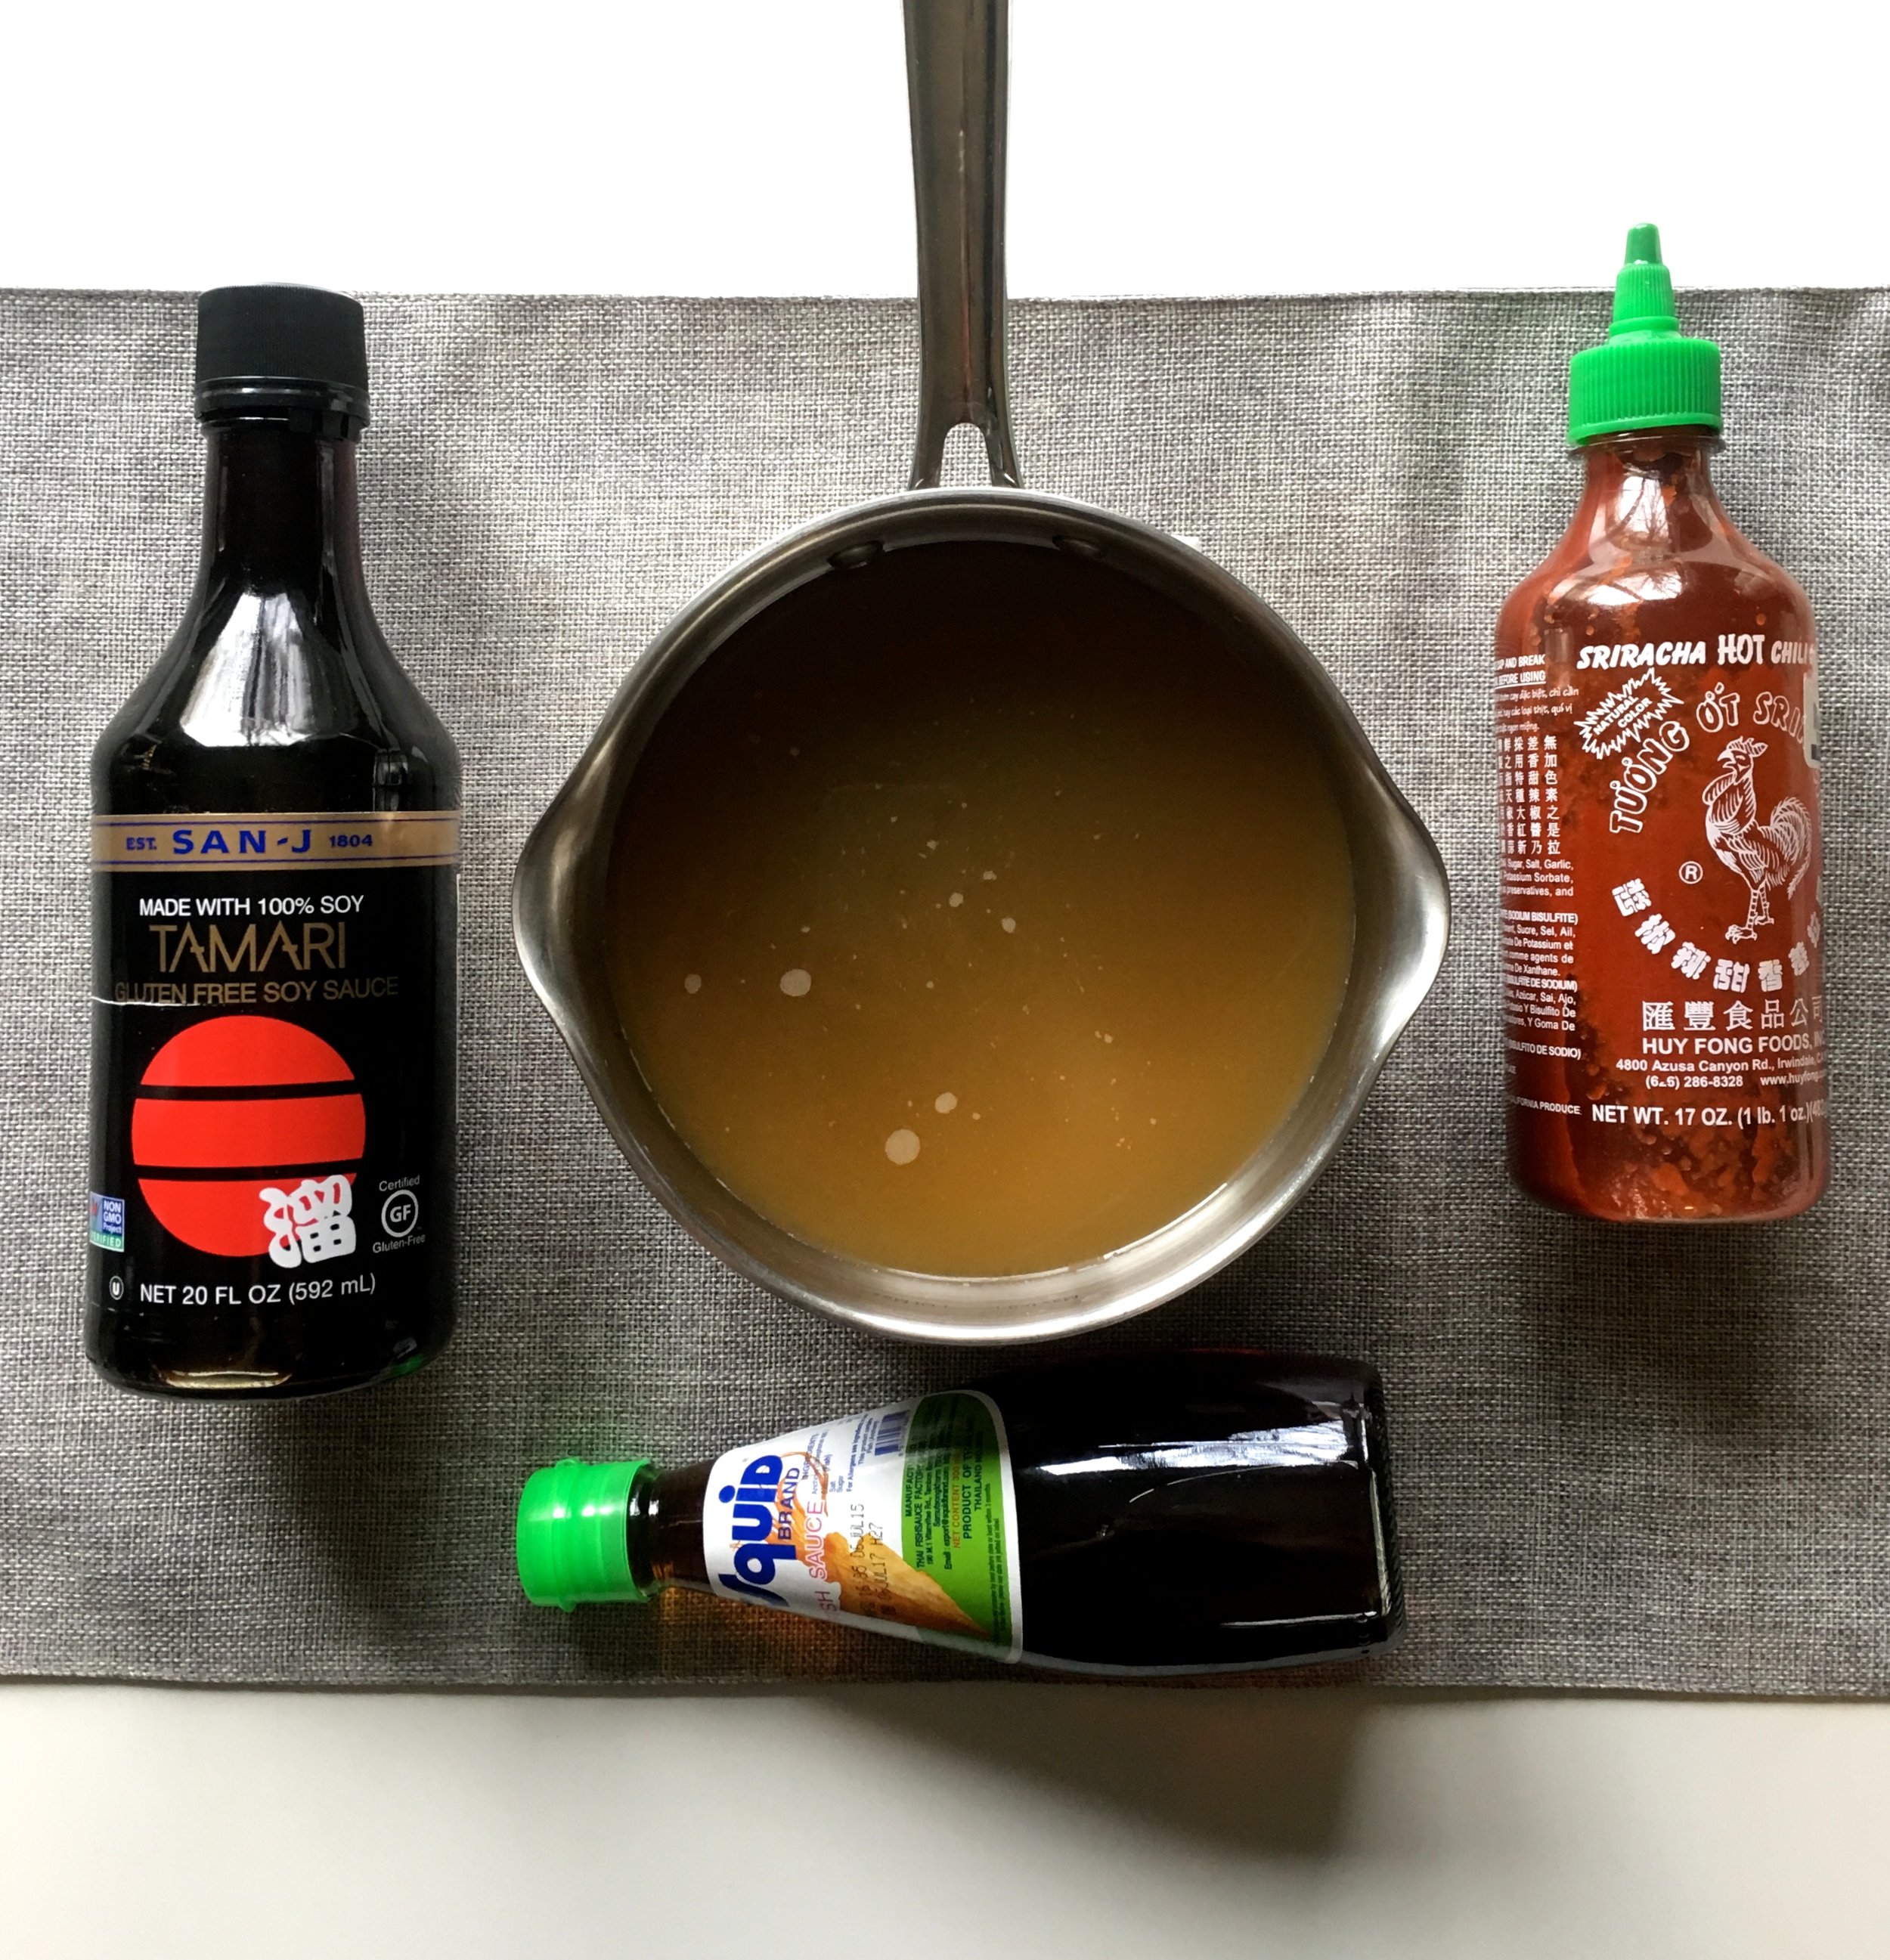 From left to right: Tamari, Fish Sauce, Sriracha.